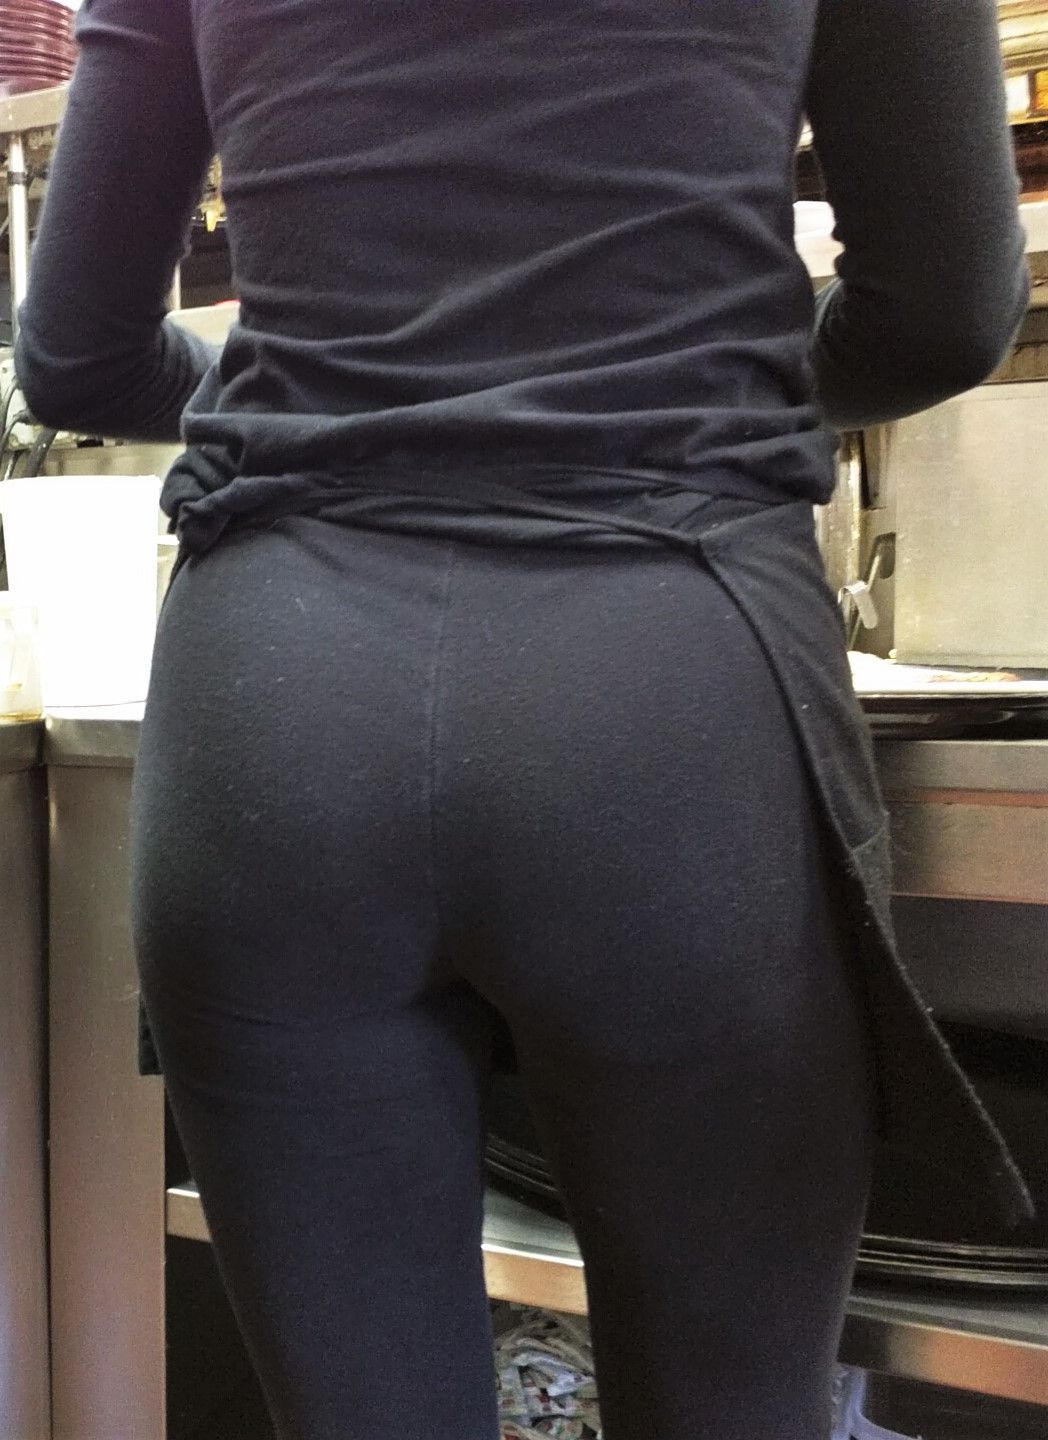 hot waitress with a very sexy ass wearing black yoga pants at work